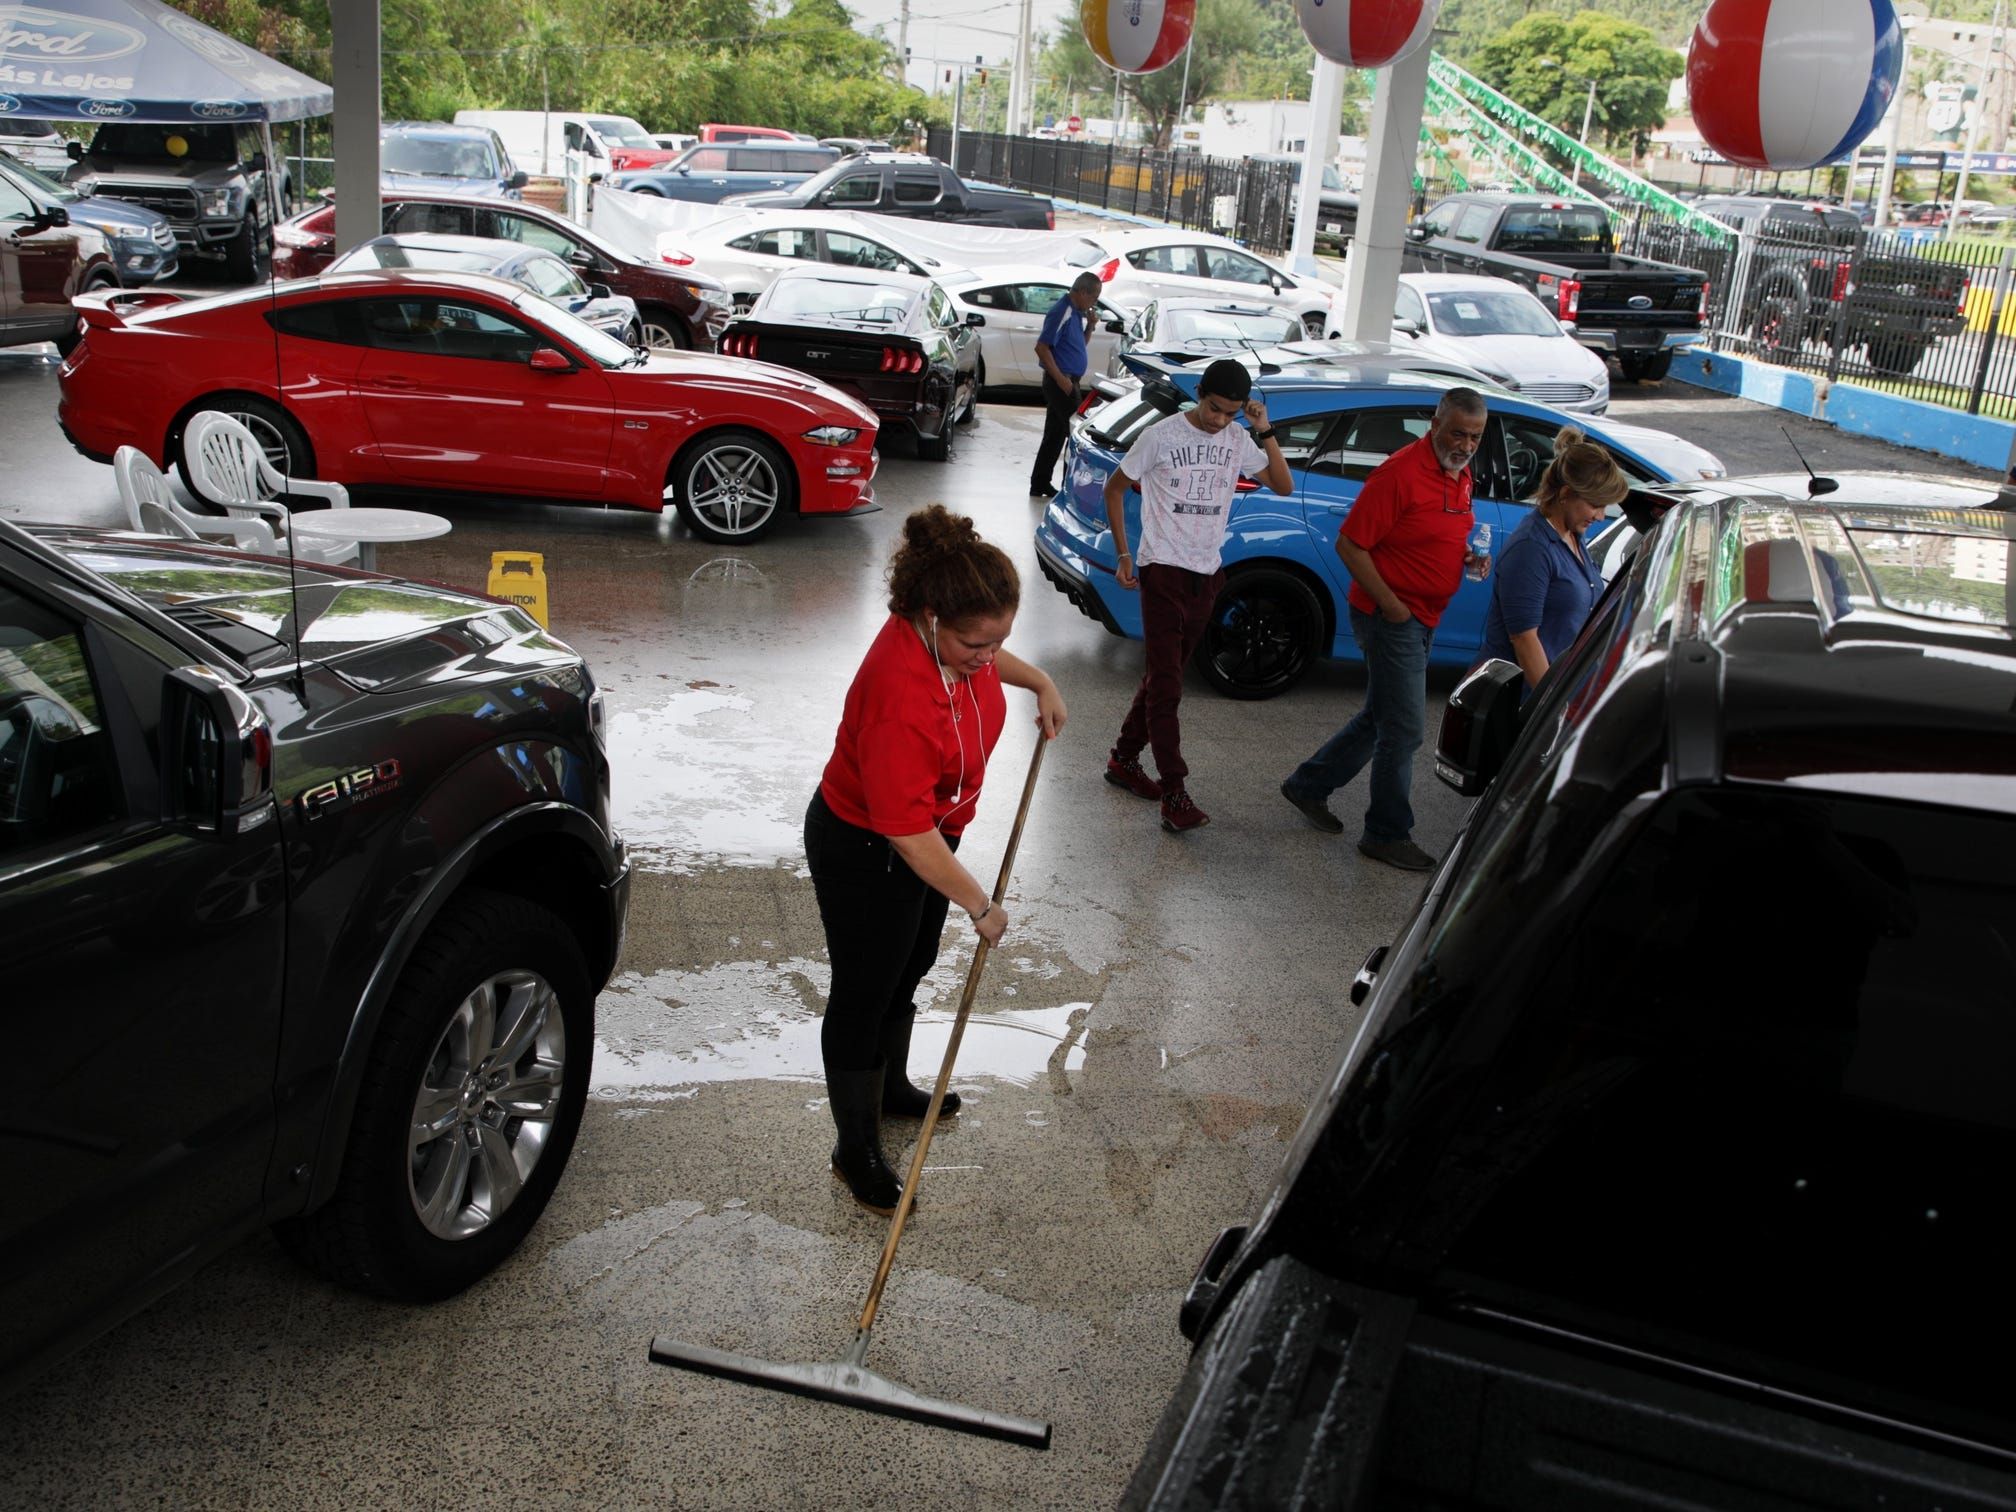 Sol Lorenzana dries the showroom floor at Caguas Expressway Motors after a morning rain as the dealership still works to fix their facilities ten months after Hurricane Maria hit the island in Caguas, Puerto Rico.